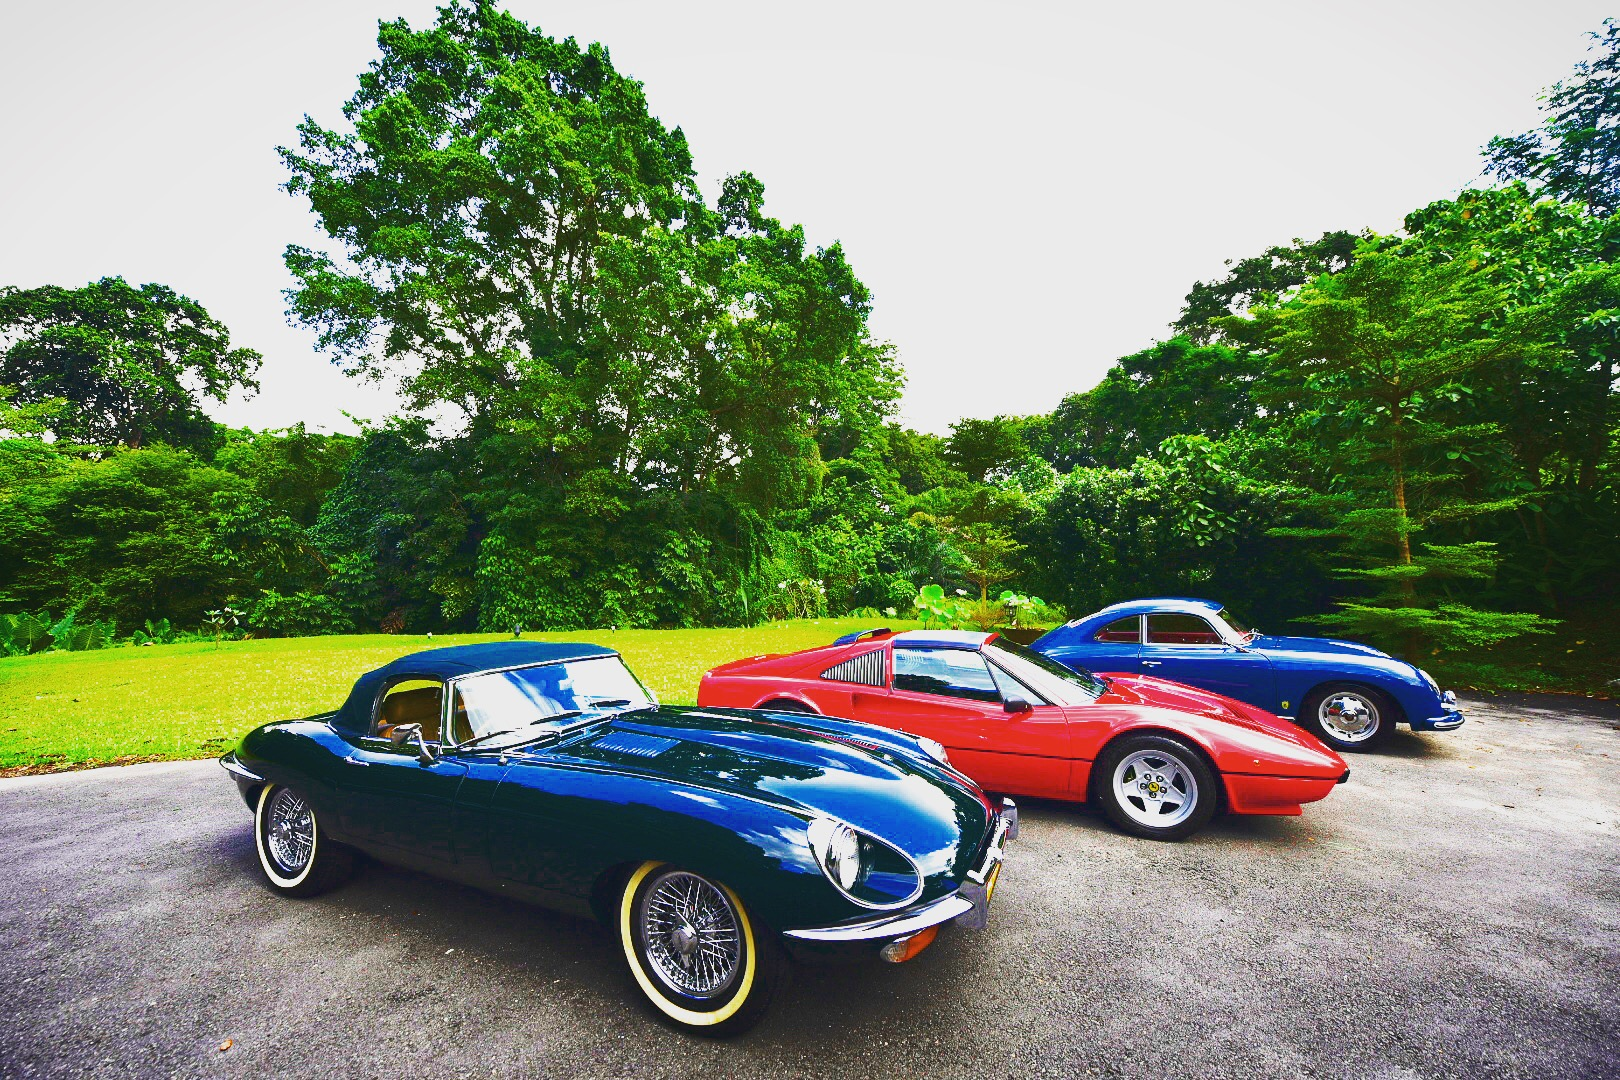 Luxglove Classic Car Weekend First Event Of Its Kind In Singapore